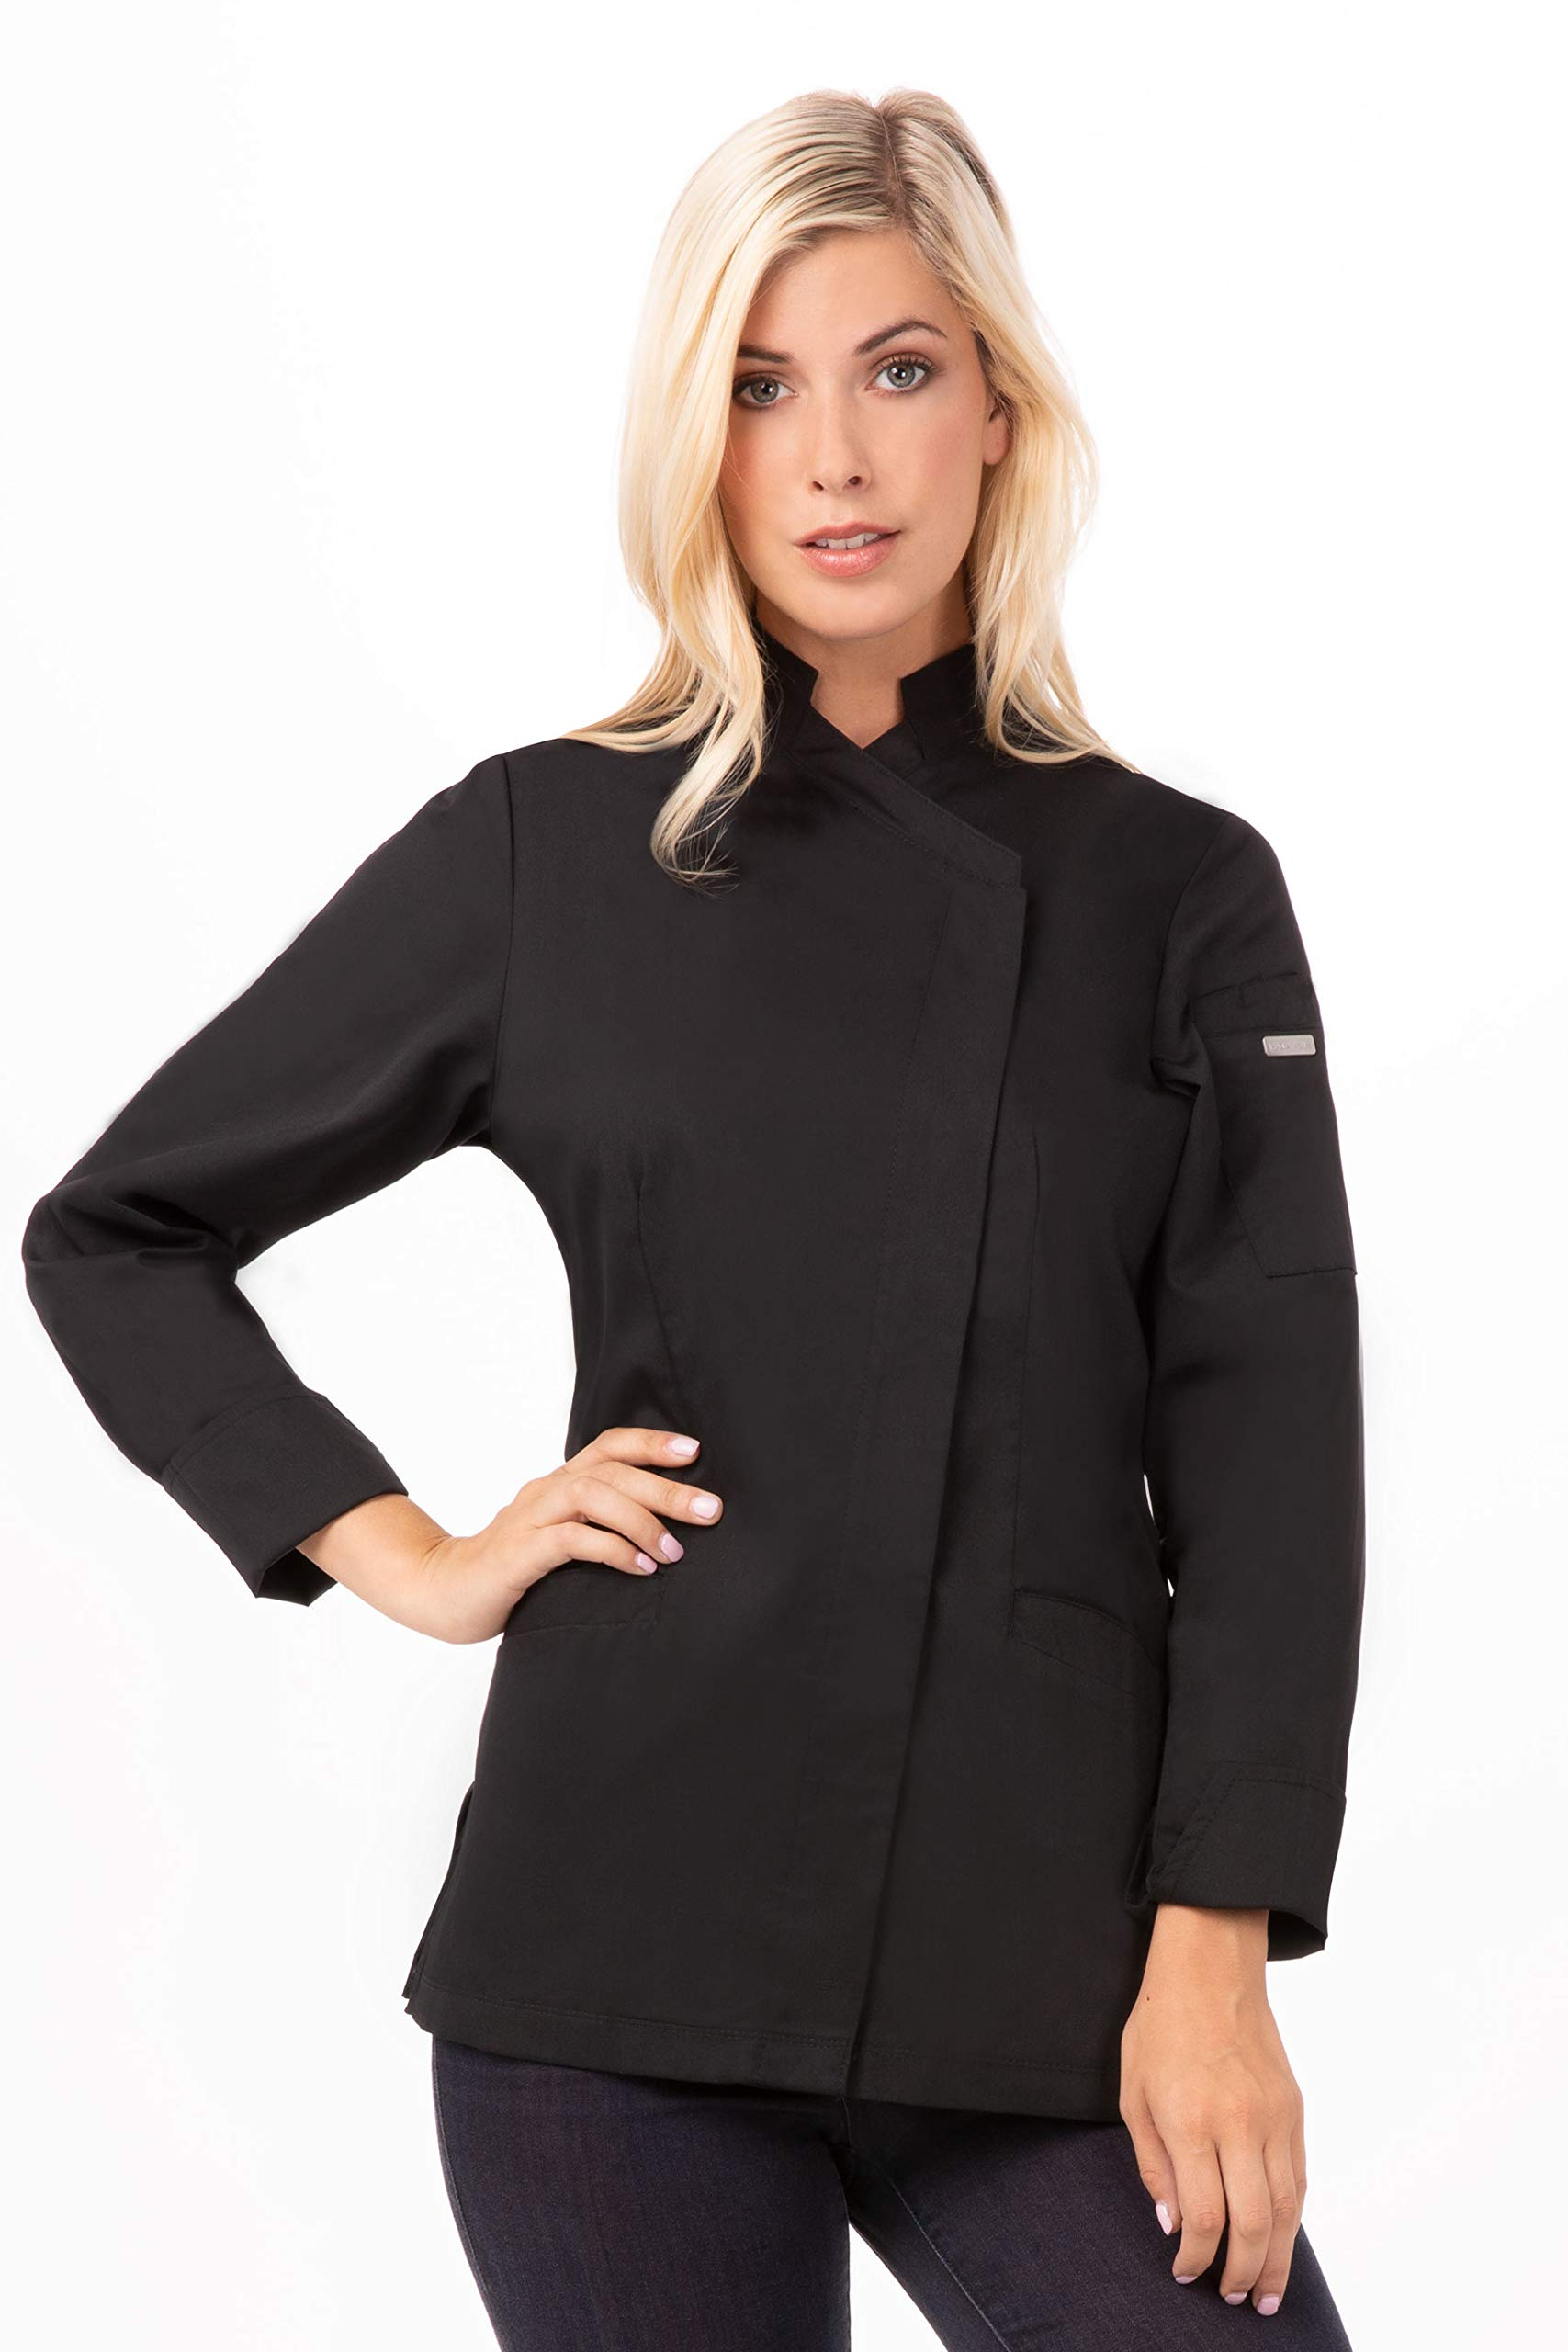 Chef Works Women's Marrakesh V-Series Chef Coat, Black, Small by Chef Works